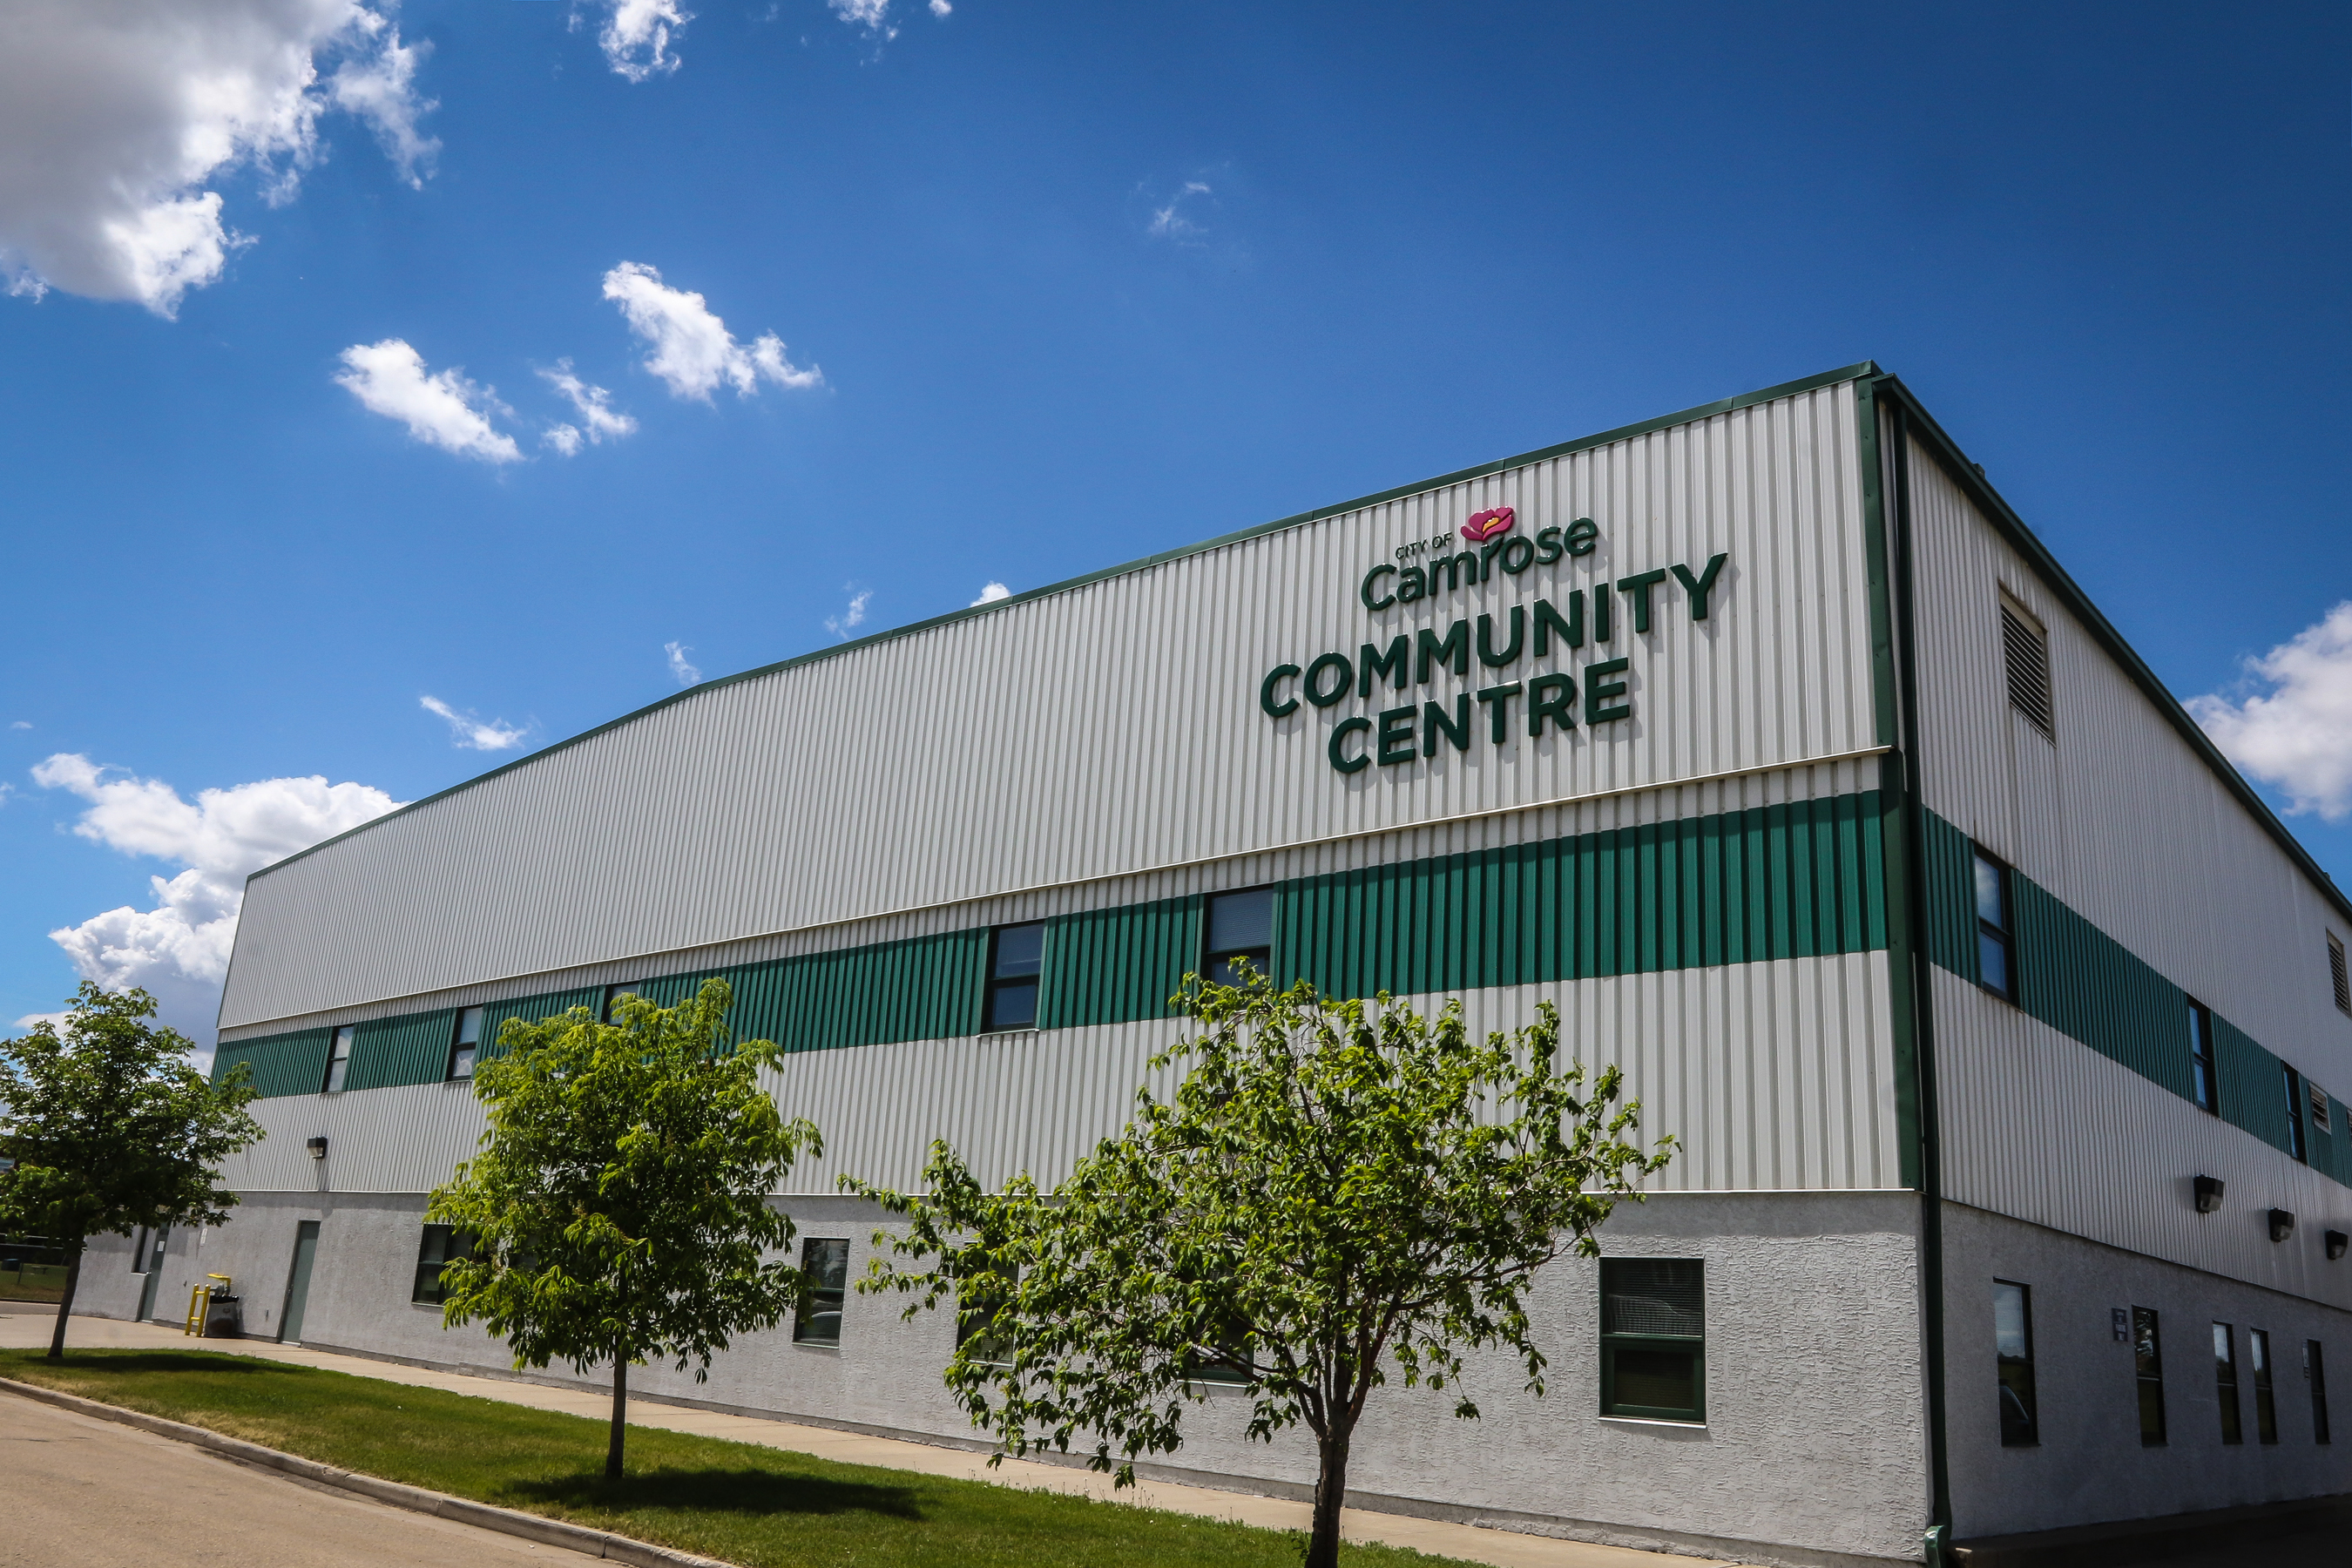 communitycentre01